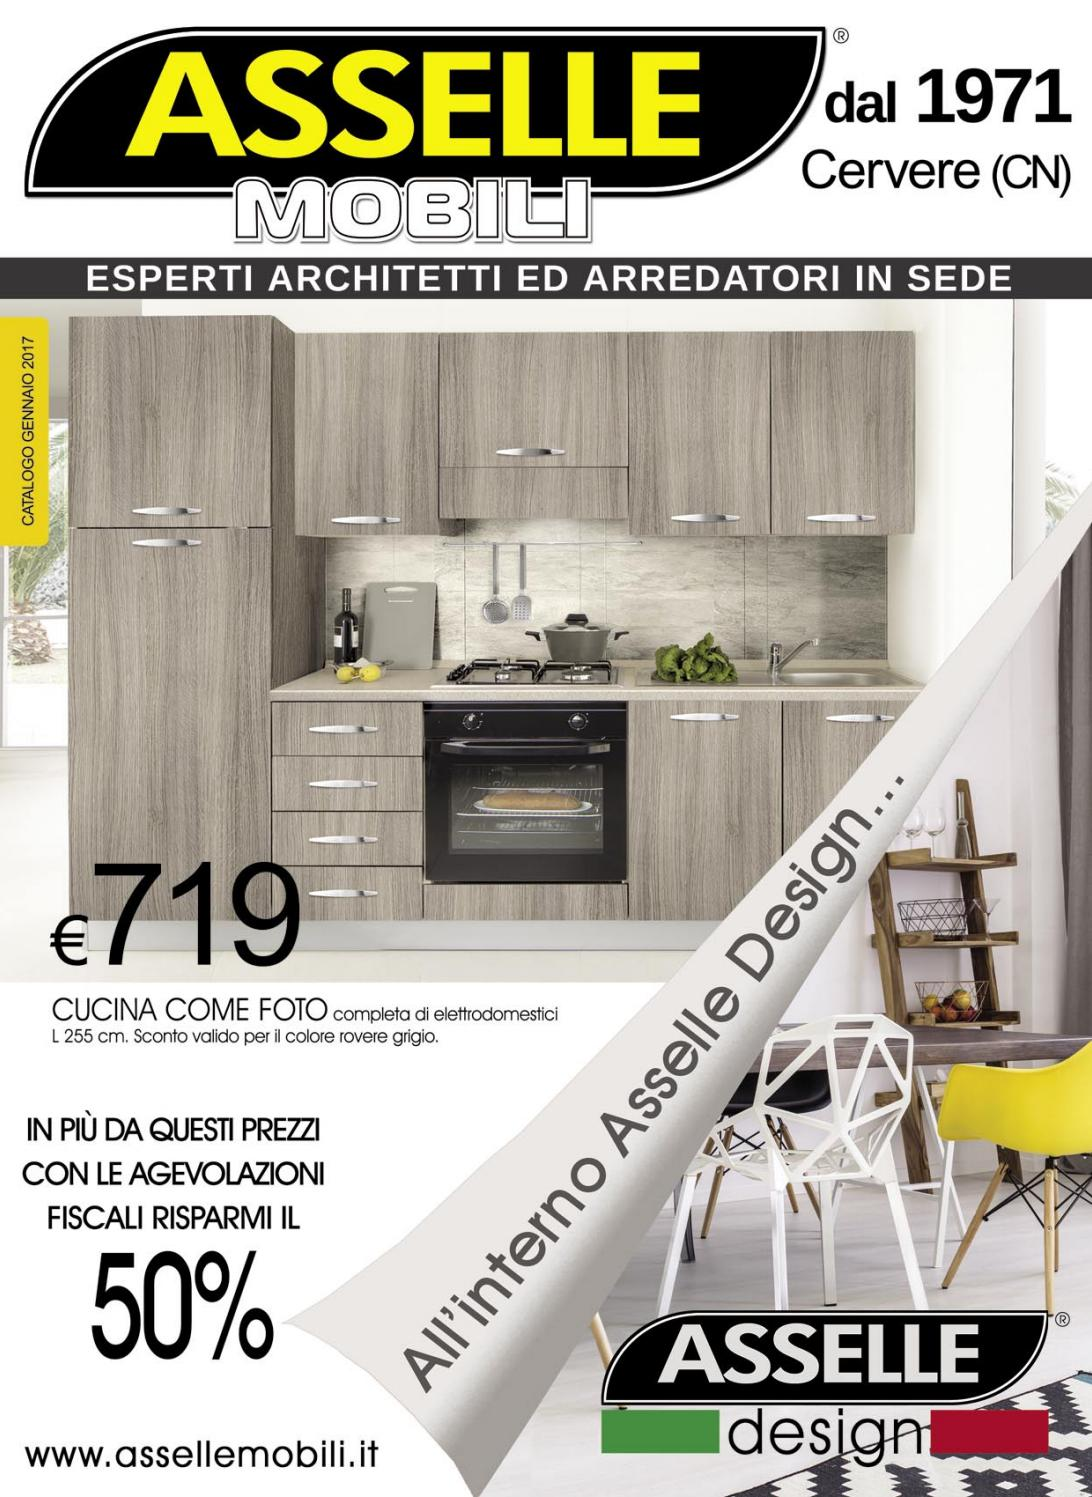 asselle mobili catalogo gennaio 2017 by asselle mobili - issuu - Asselle Mobili Cucine